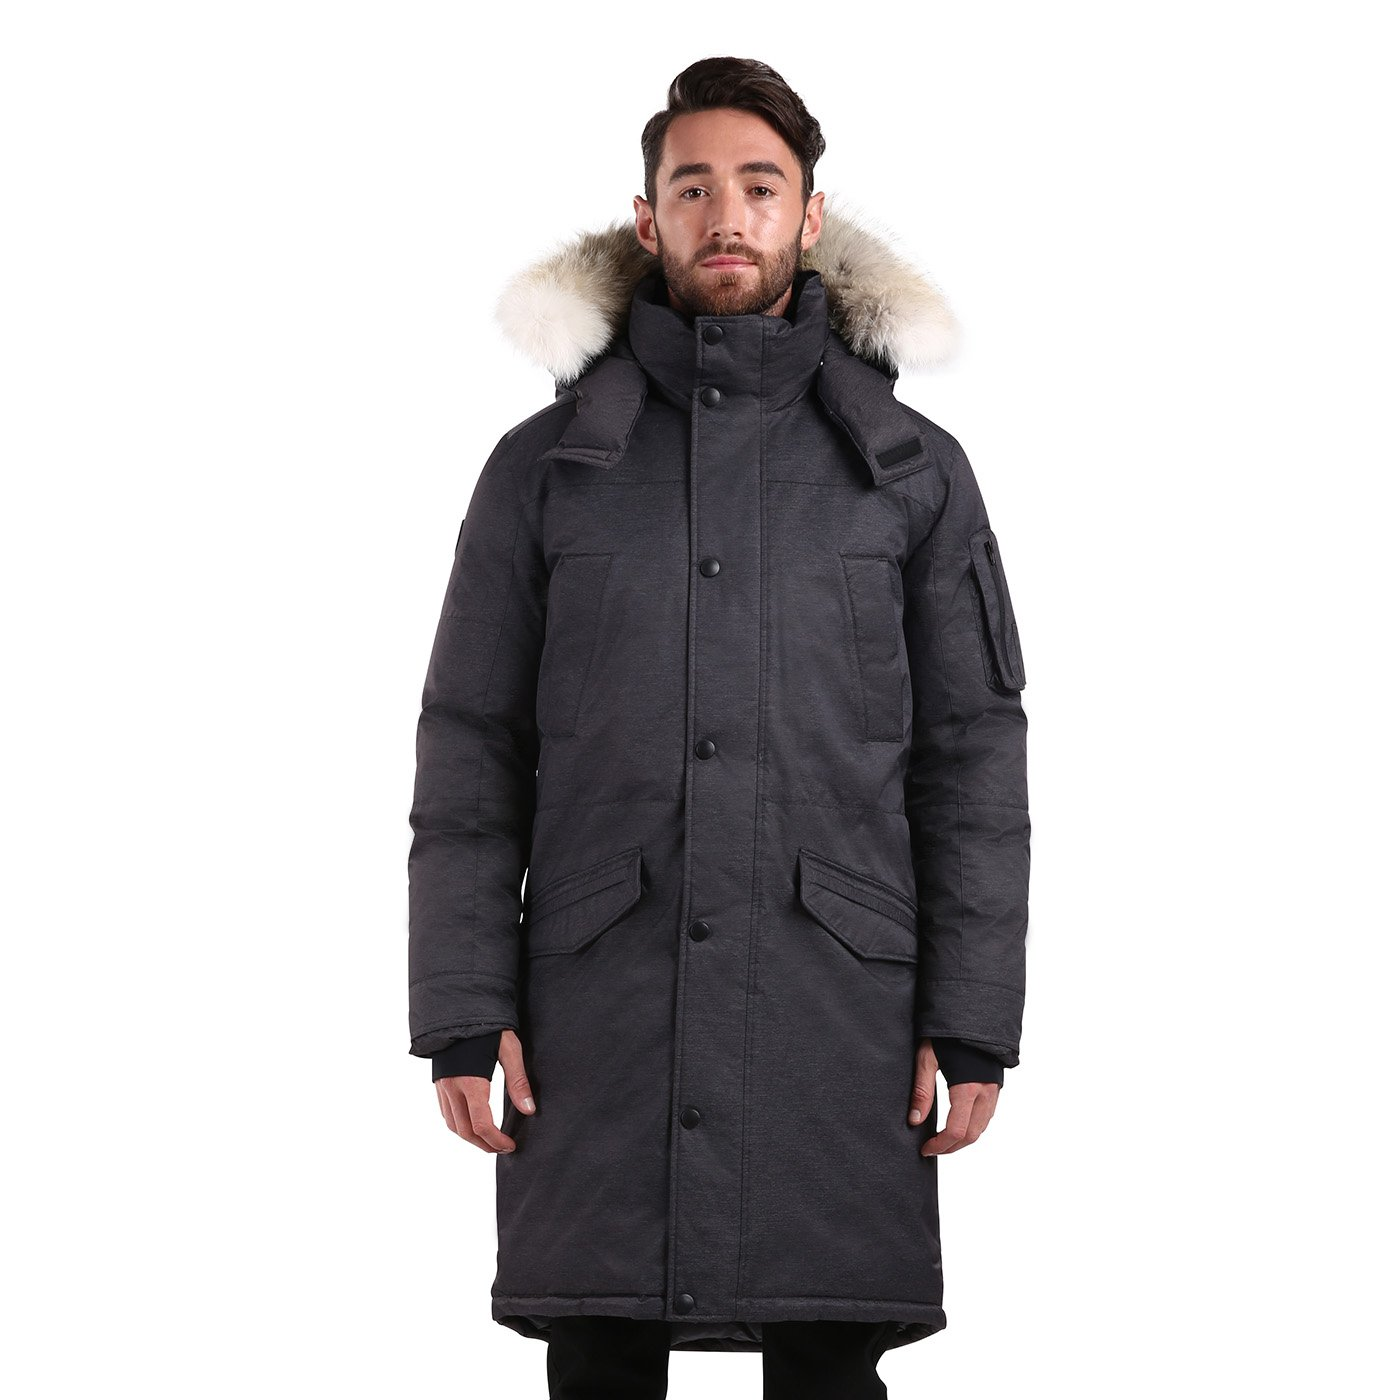 Triple F.A.T. Goose SAGA Collection | Eberly II Mens Hooded Goose Down Jacket Parka with Real Coyote Fur (2XL, Charcoal)